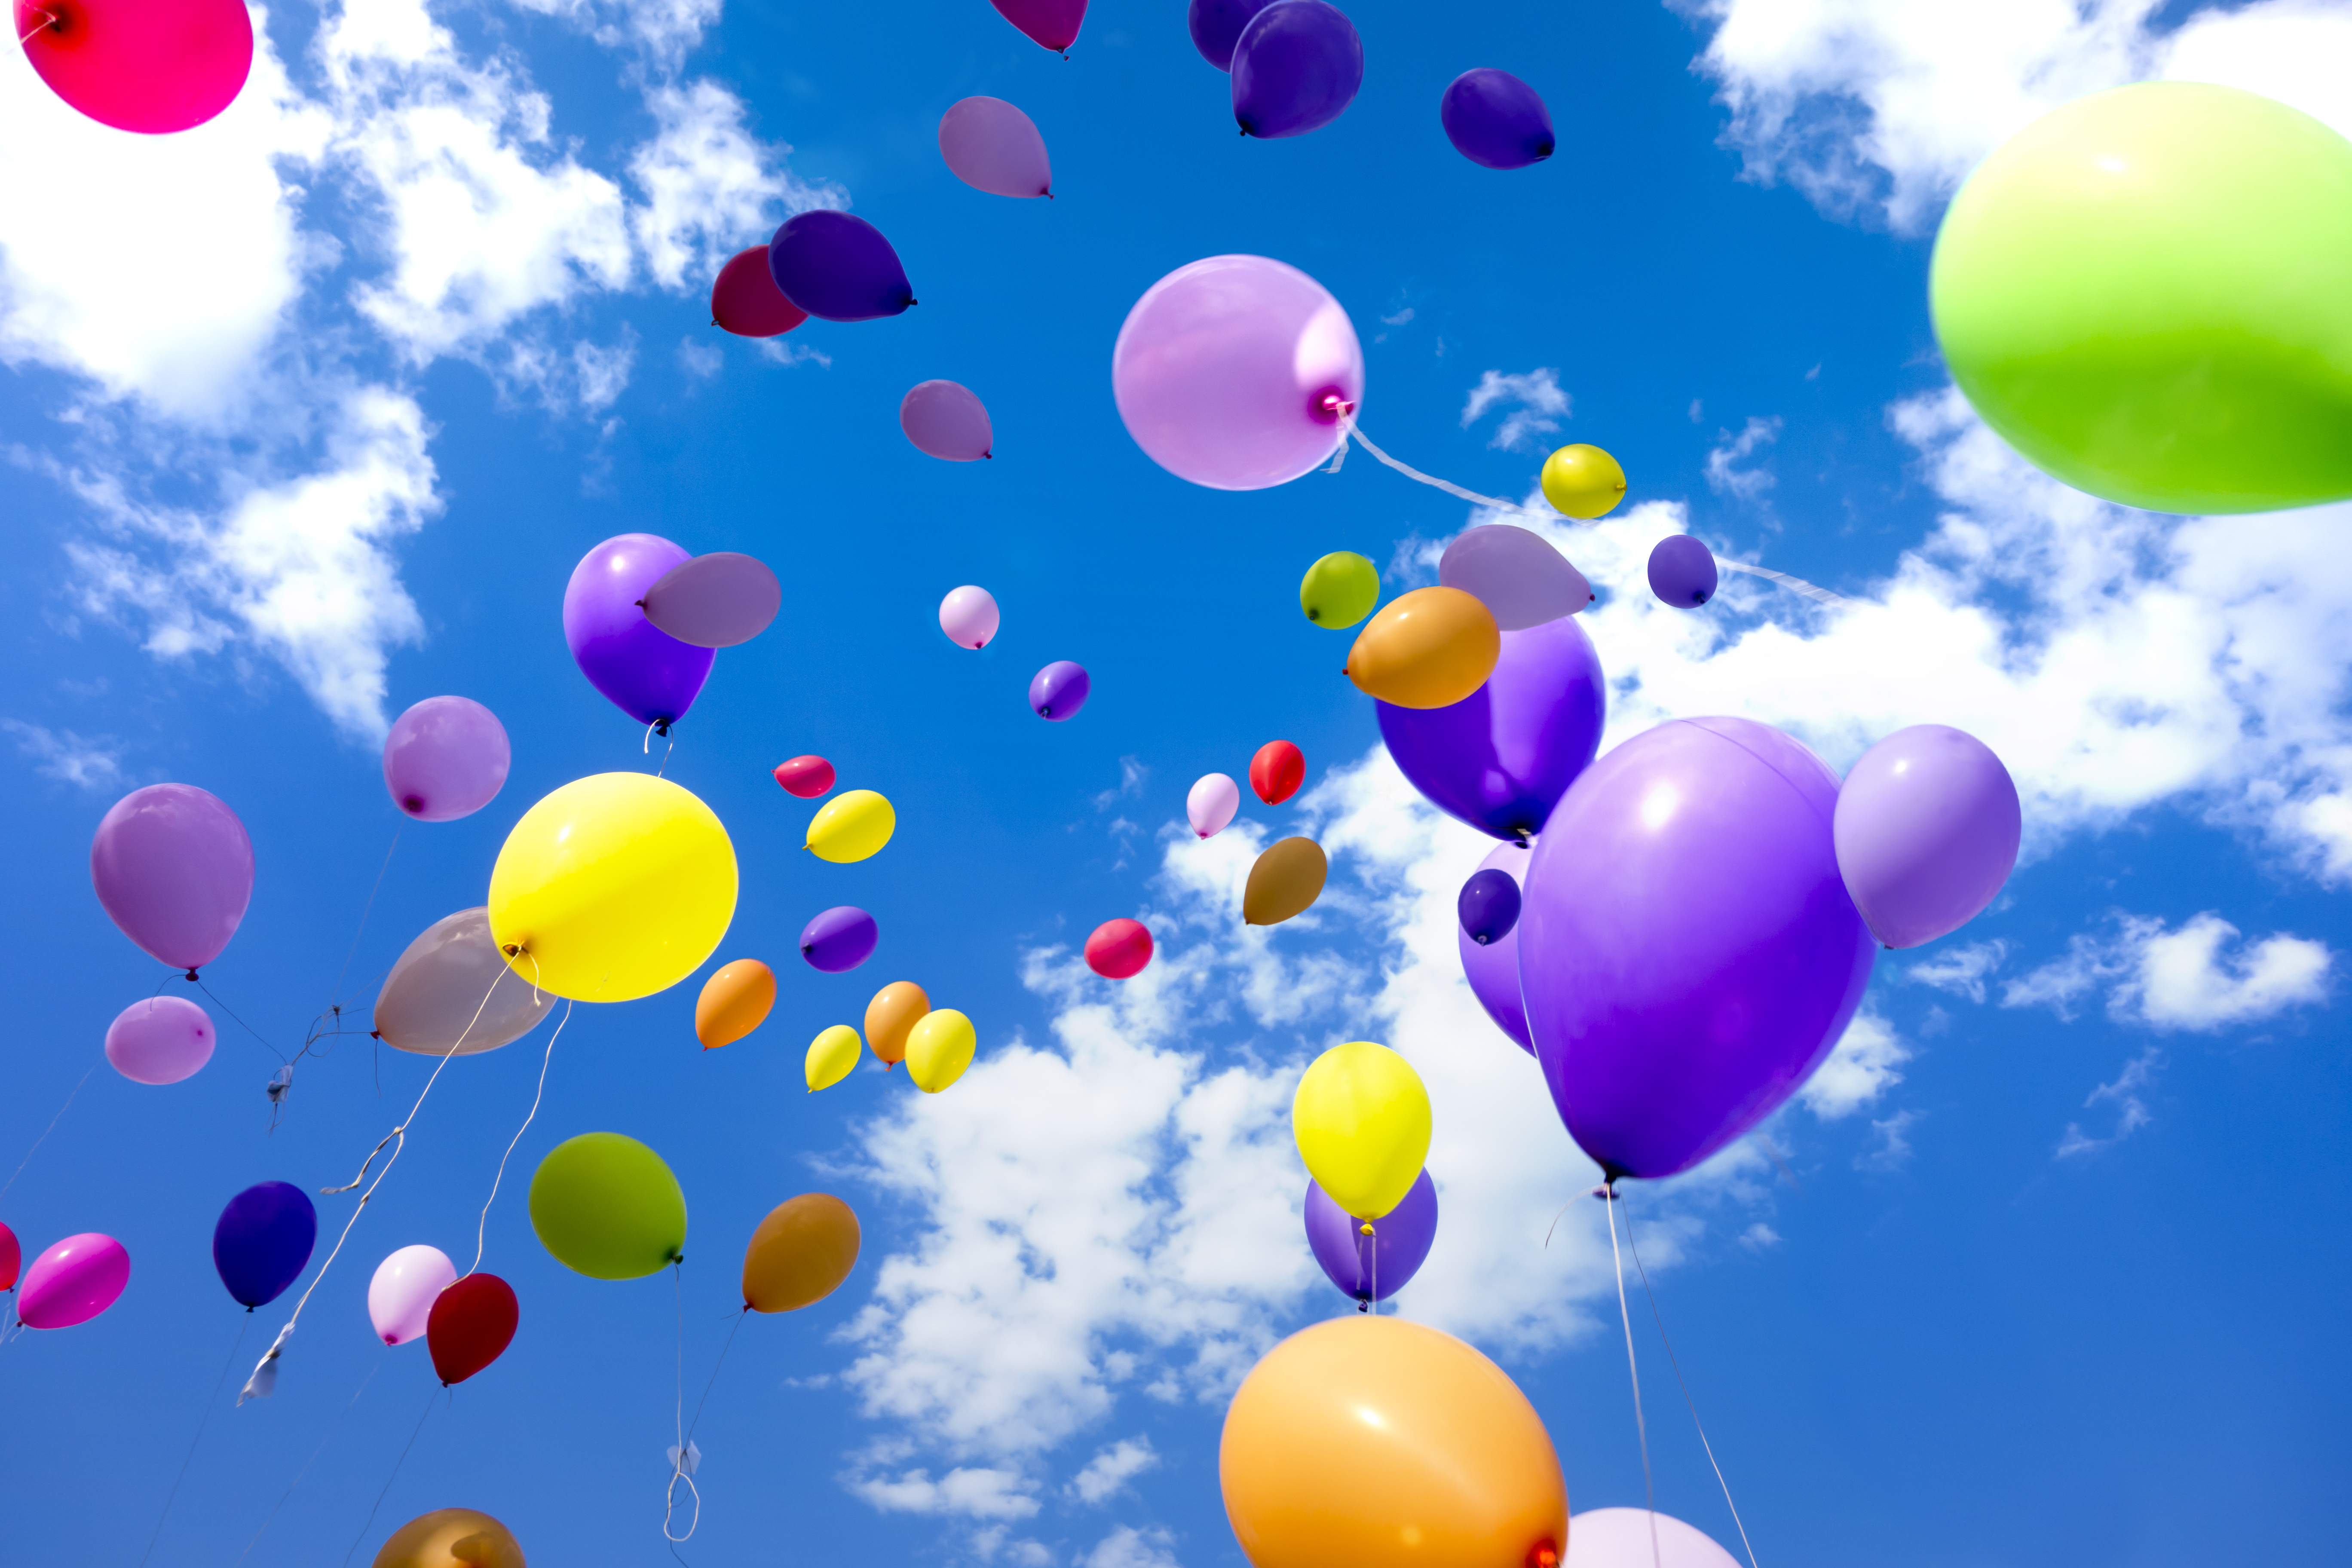 ┬® Libux77 _ Dreamstime.com – Party Balloons Flying Sky Photo